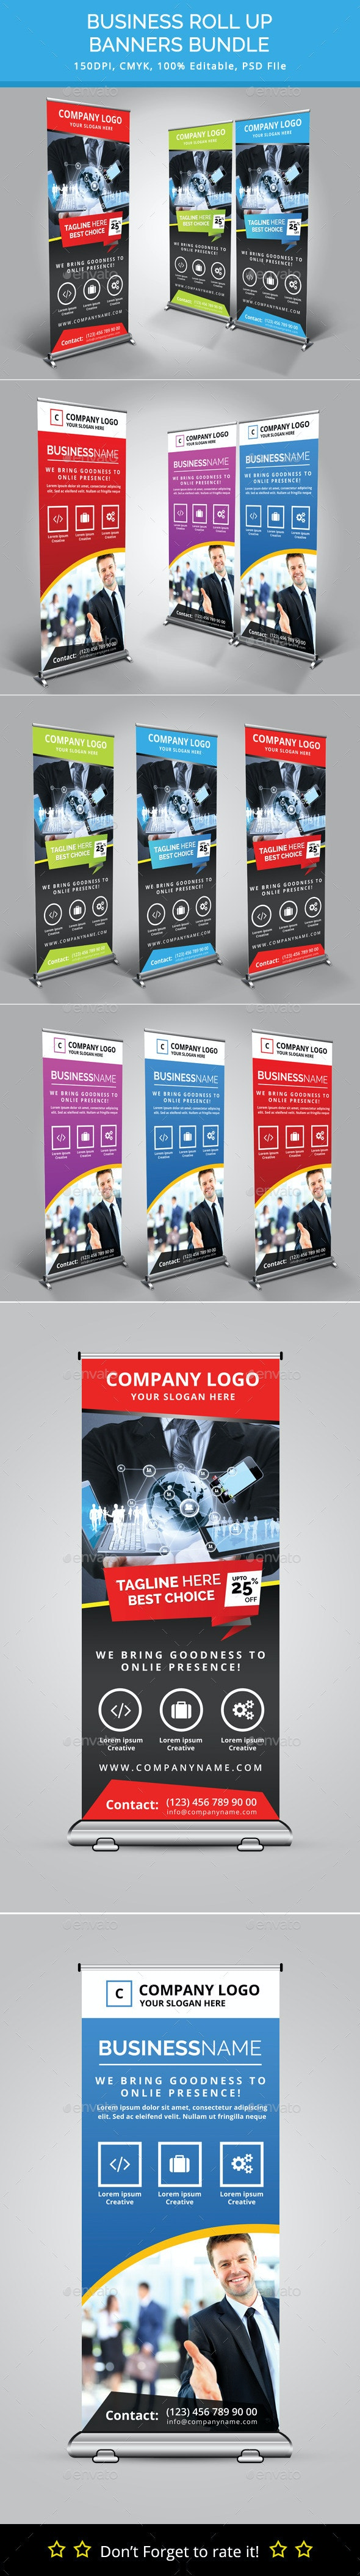 Bundle of 2 Rollup Banners